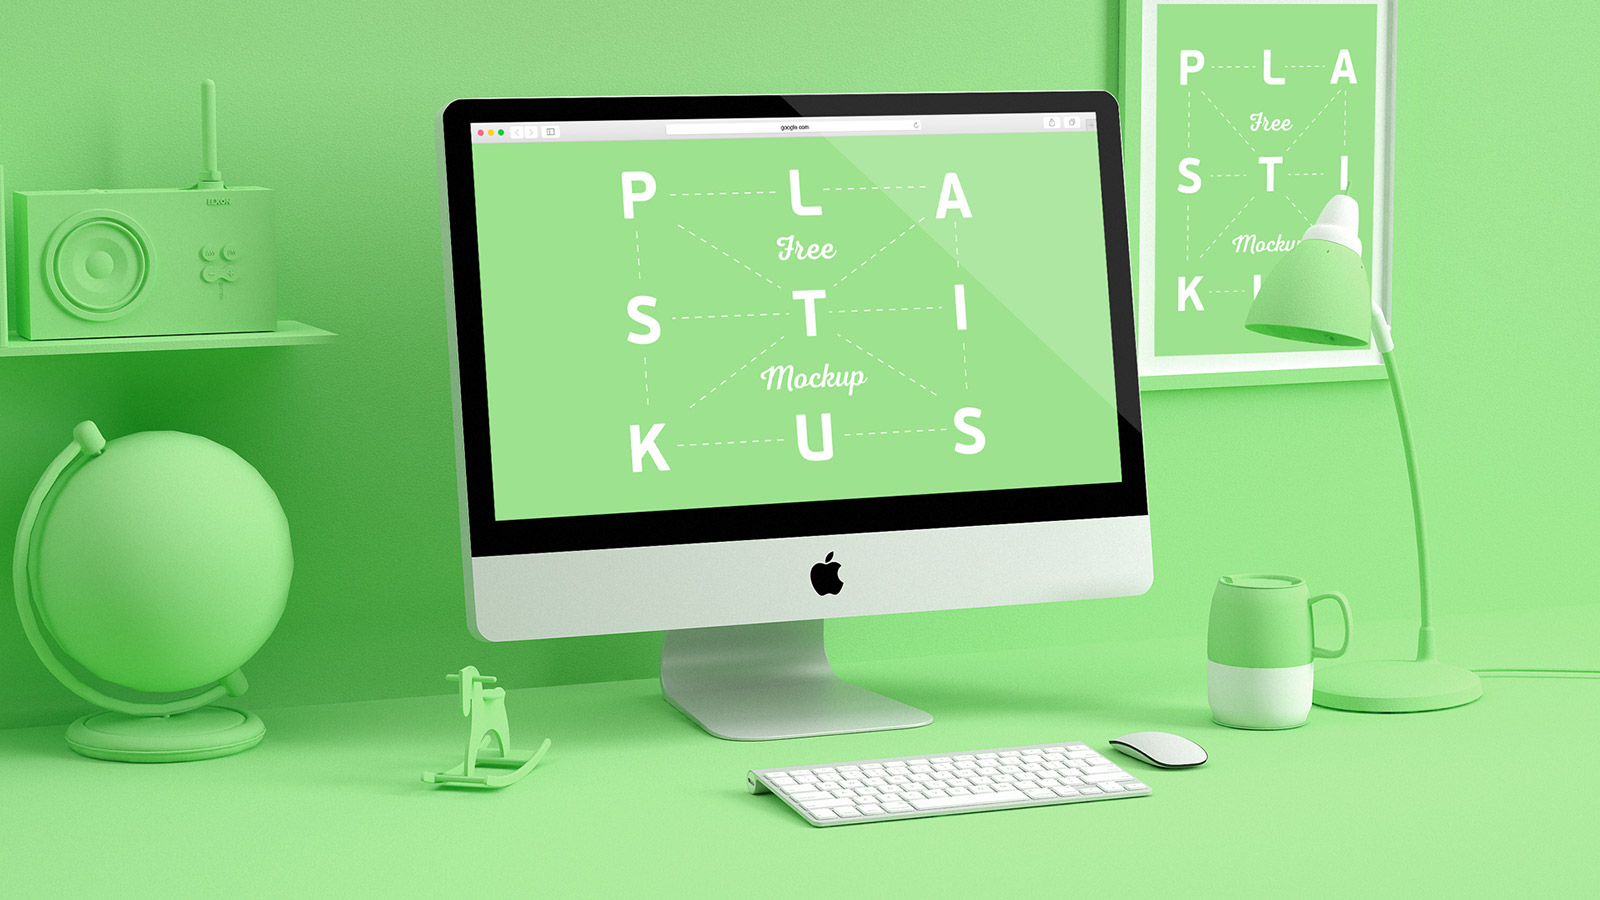 Free-Apple-iMac-Mockup-PSD-File-8